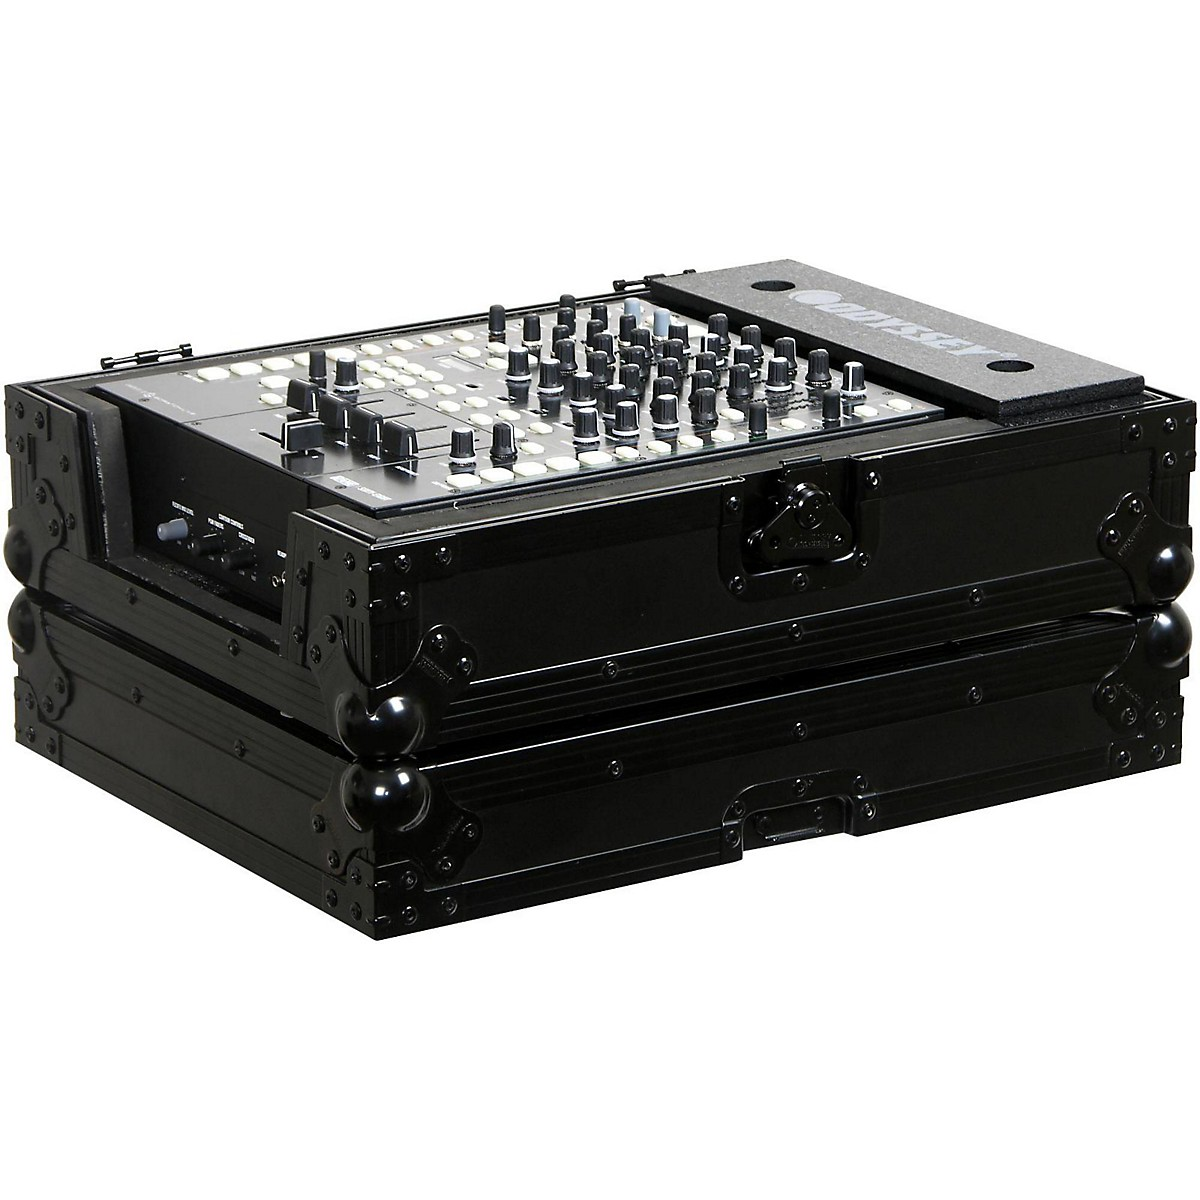 Odyssey ATA Black Label Coffin for DJ Mixers